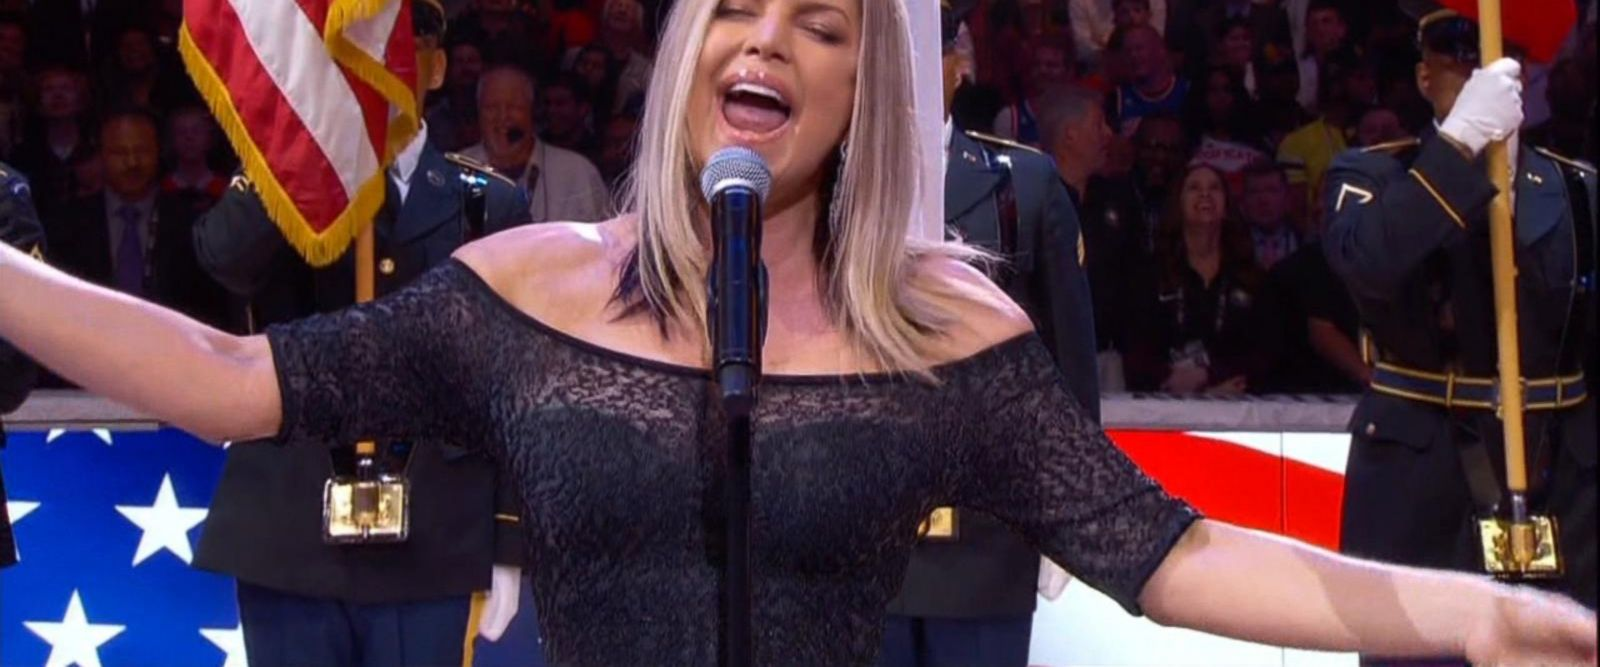 VIDEO: Fergie performs national anthem at NBA All-Star Game